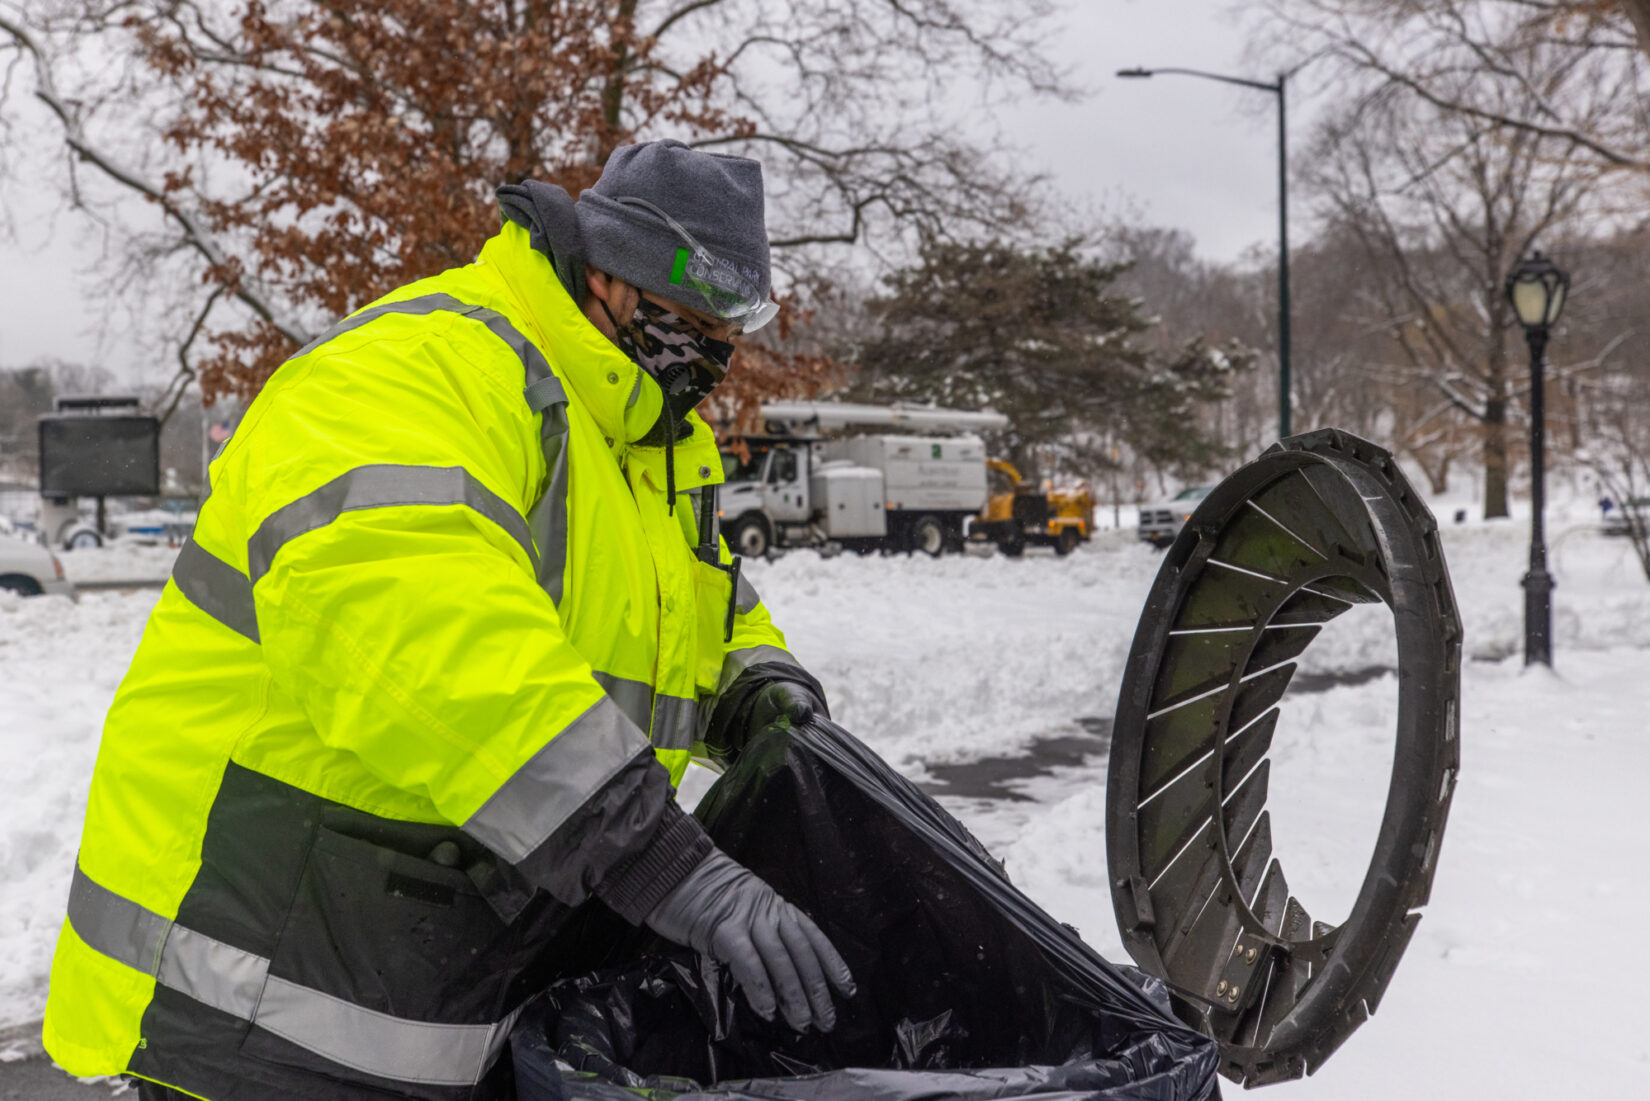 Staff member Raymond Acosta opens a trash can on a cold day in a snow-covered landscape.